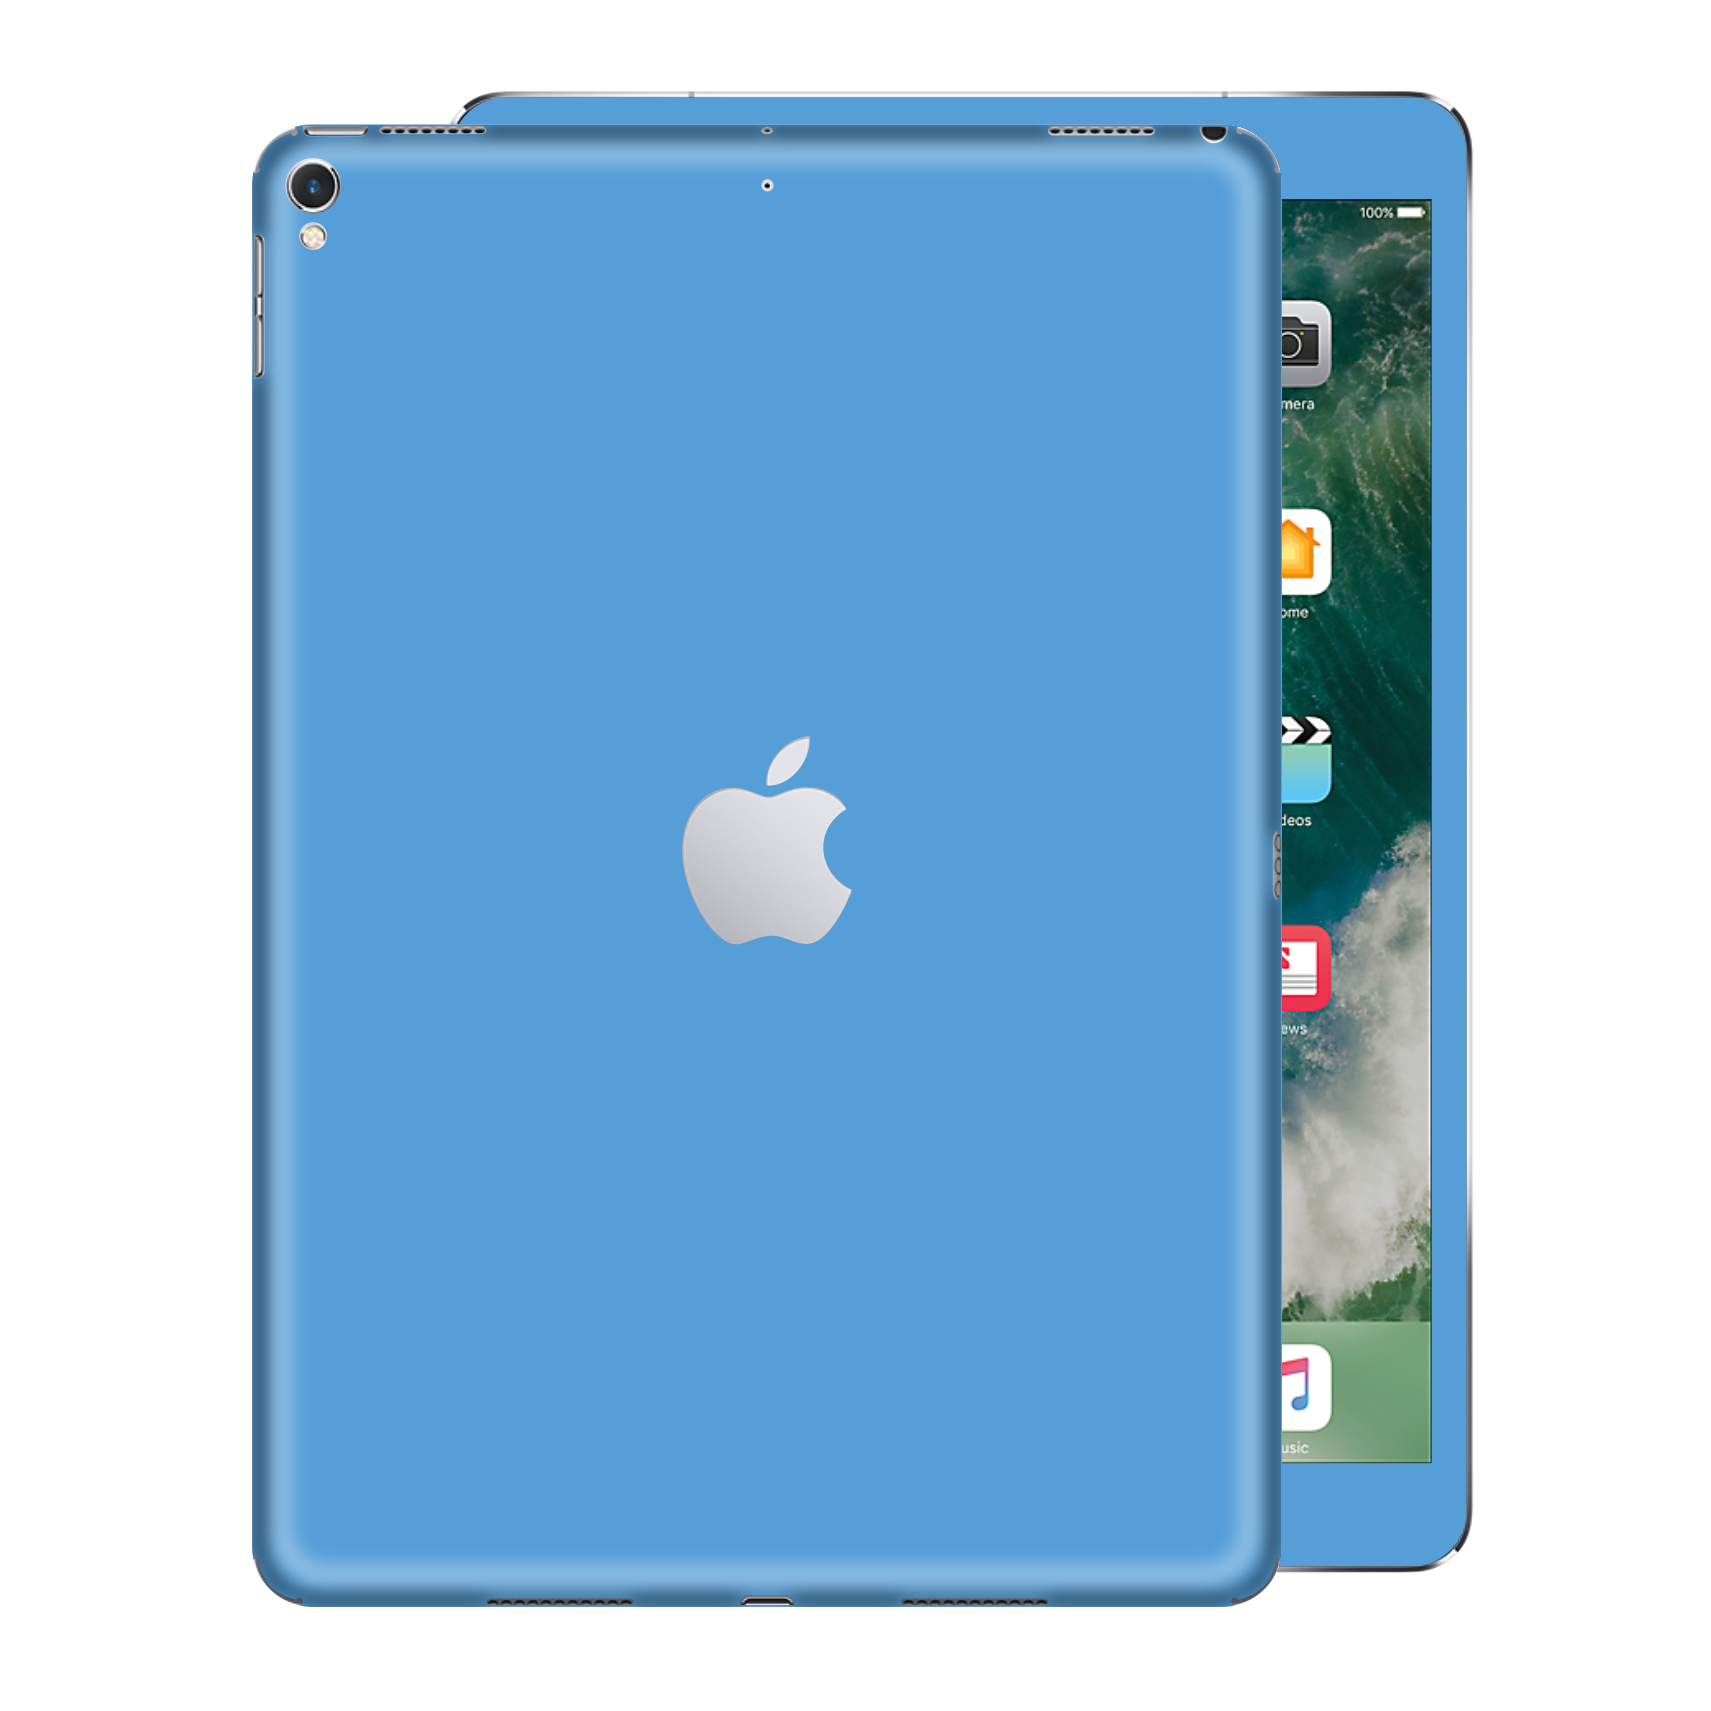 iPad PRO 10.5-inch 2017 SKY BLUE Gloss Glossy Skin, Decal, Wrap, Protector, Cover by EasySkinz | EasySkinz.com